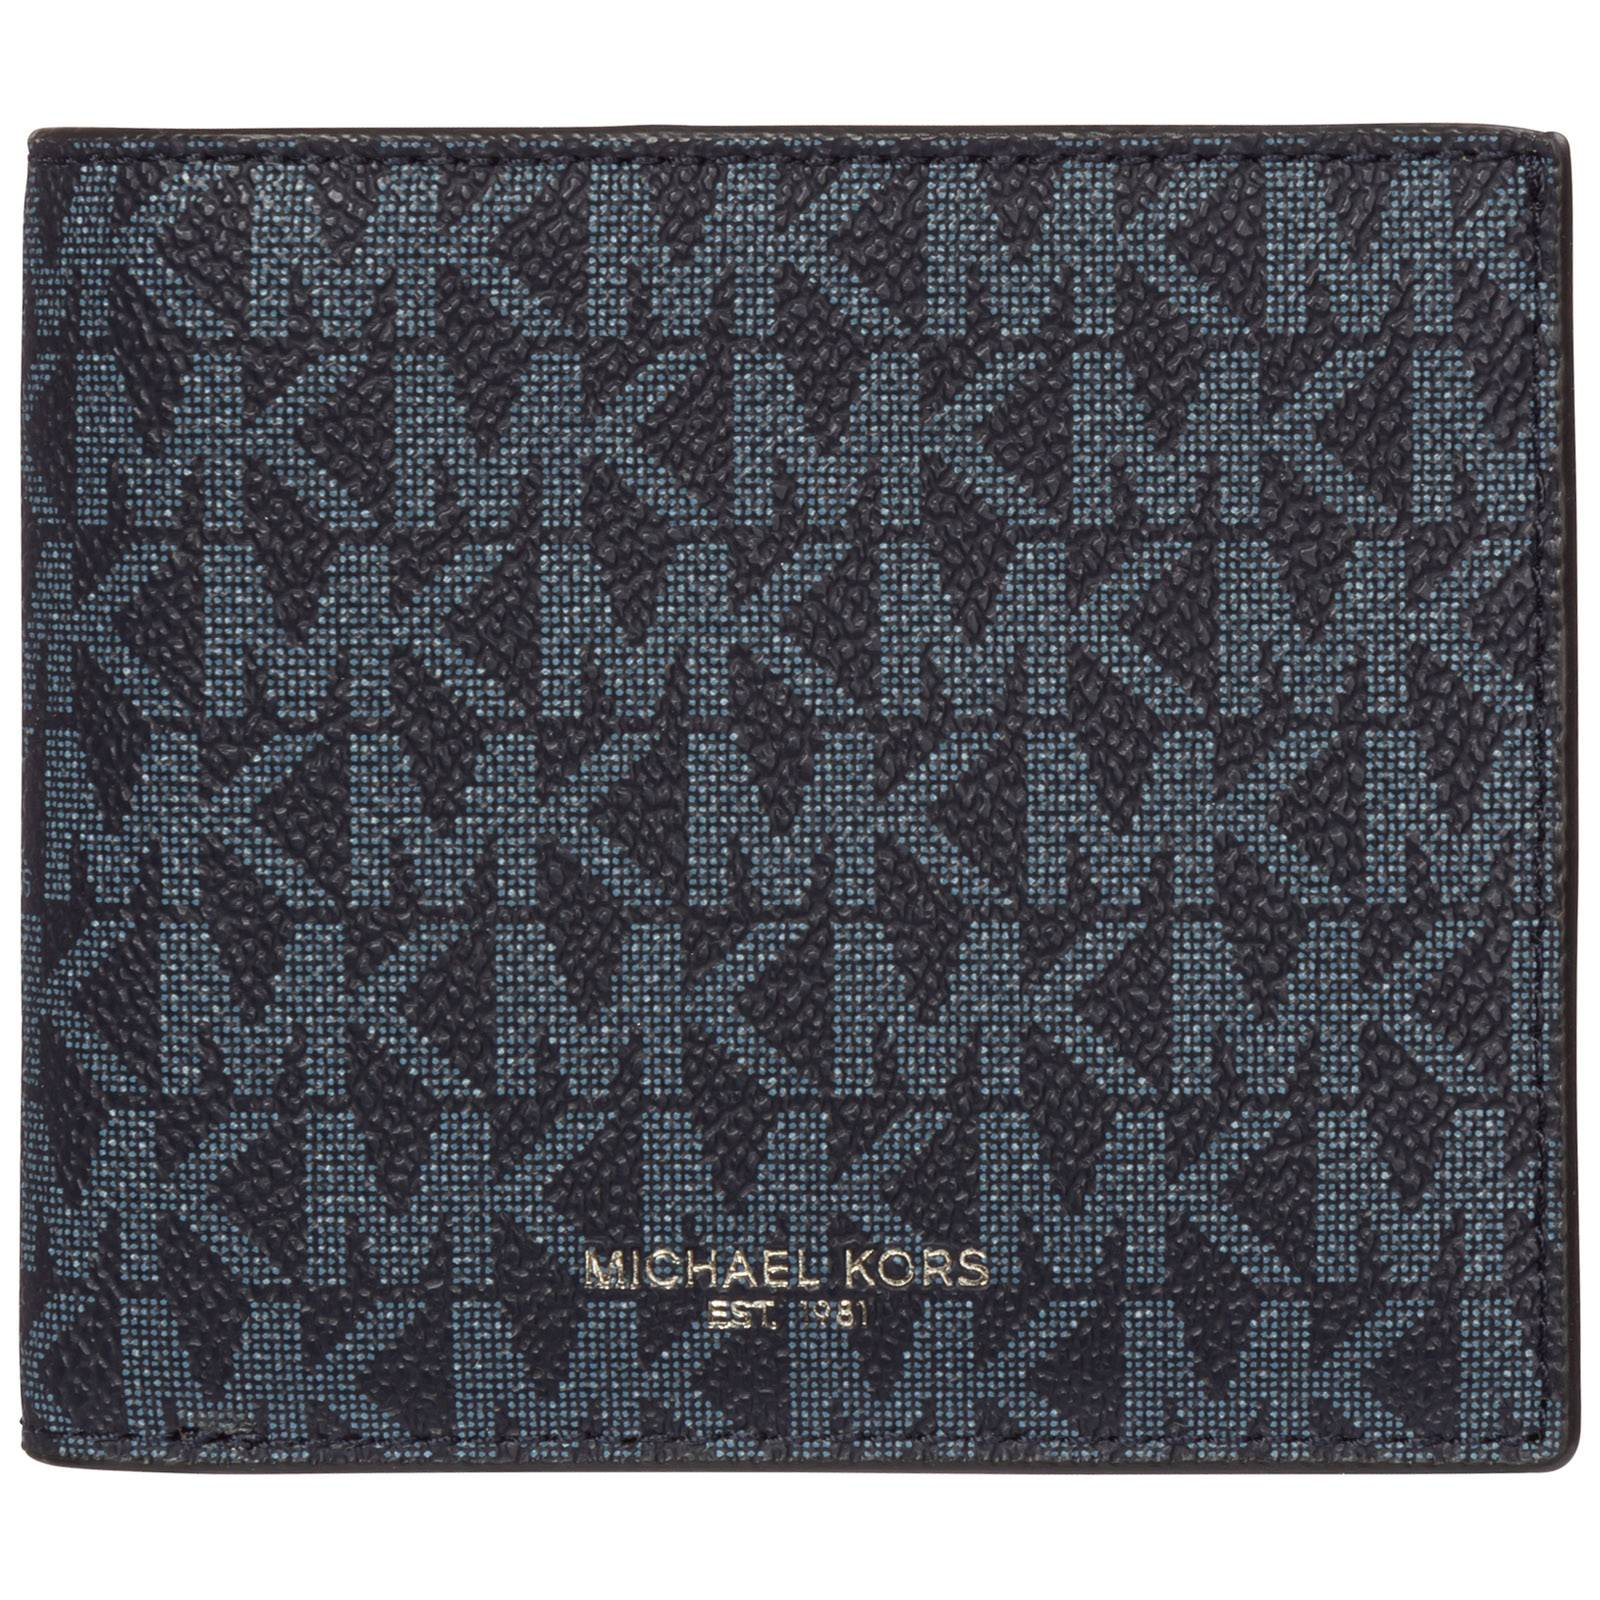 Michael Kors Men's wallet credit card bifold greyson  - Blue